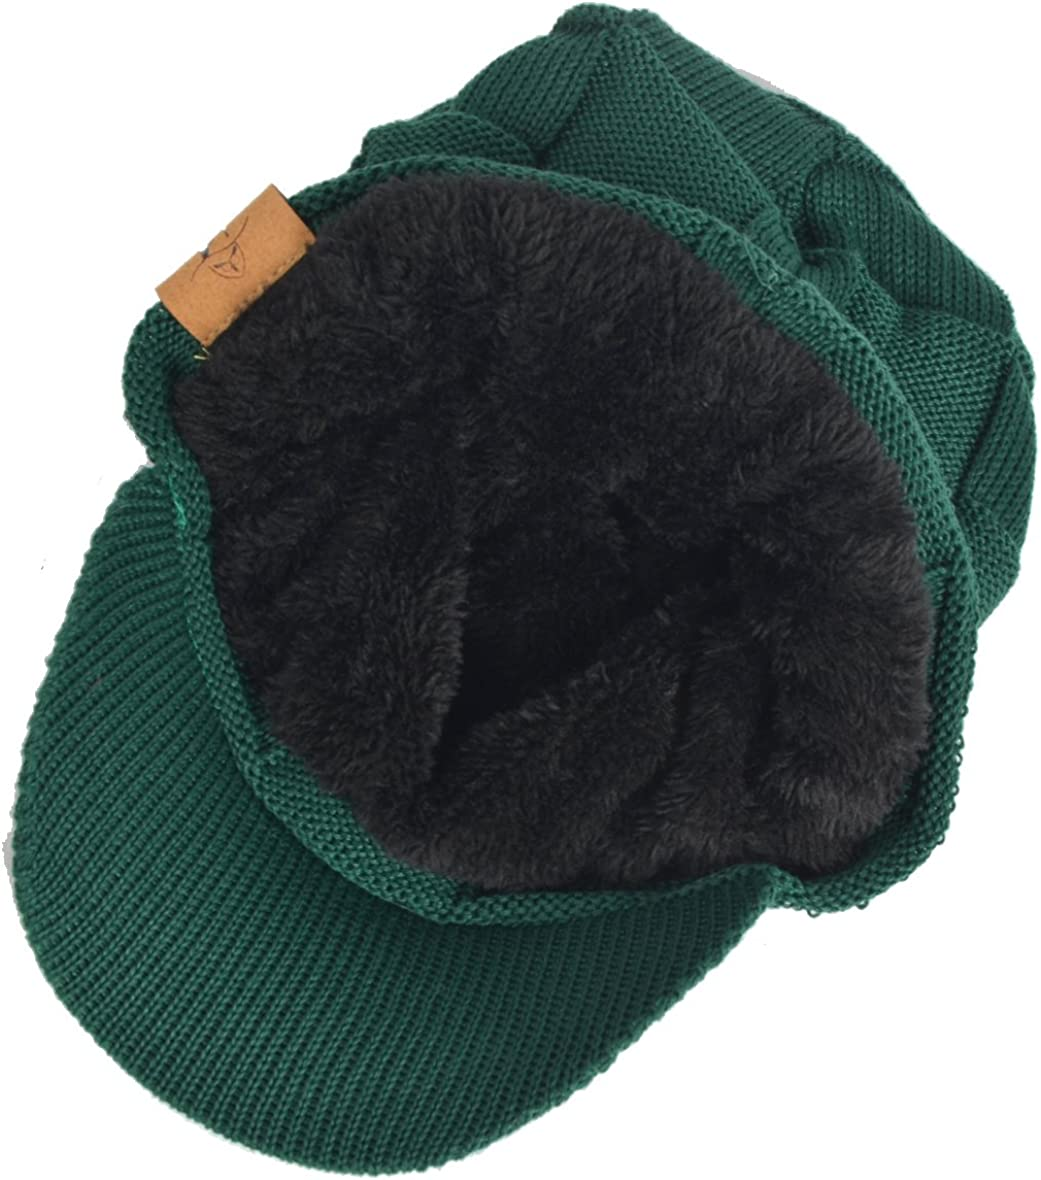 Plaid Newsboy Knitted Beanie Hat with Visor Bill Winter Warm Hat for Men B322